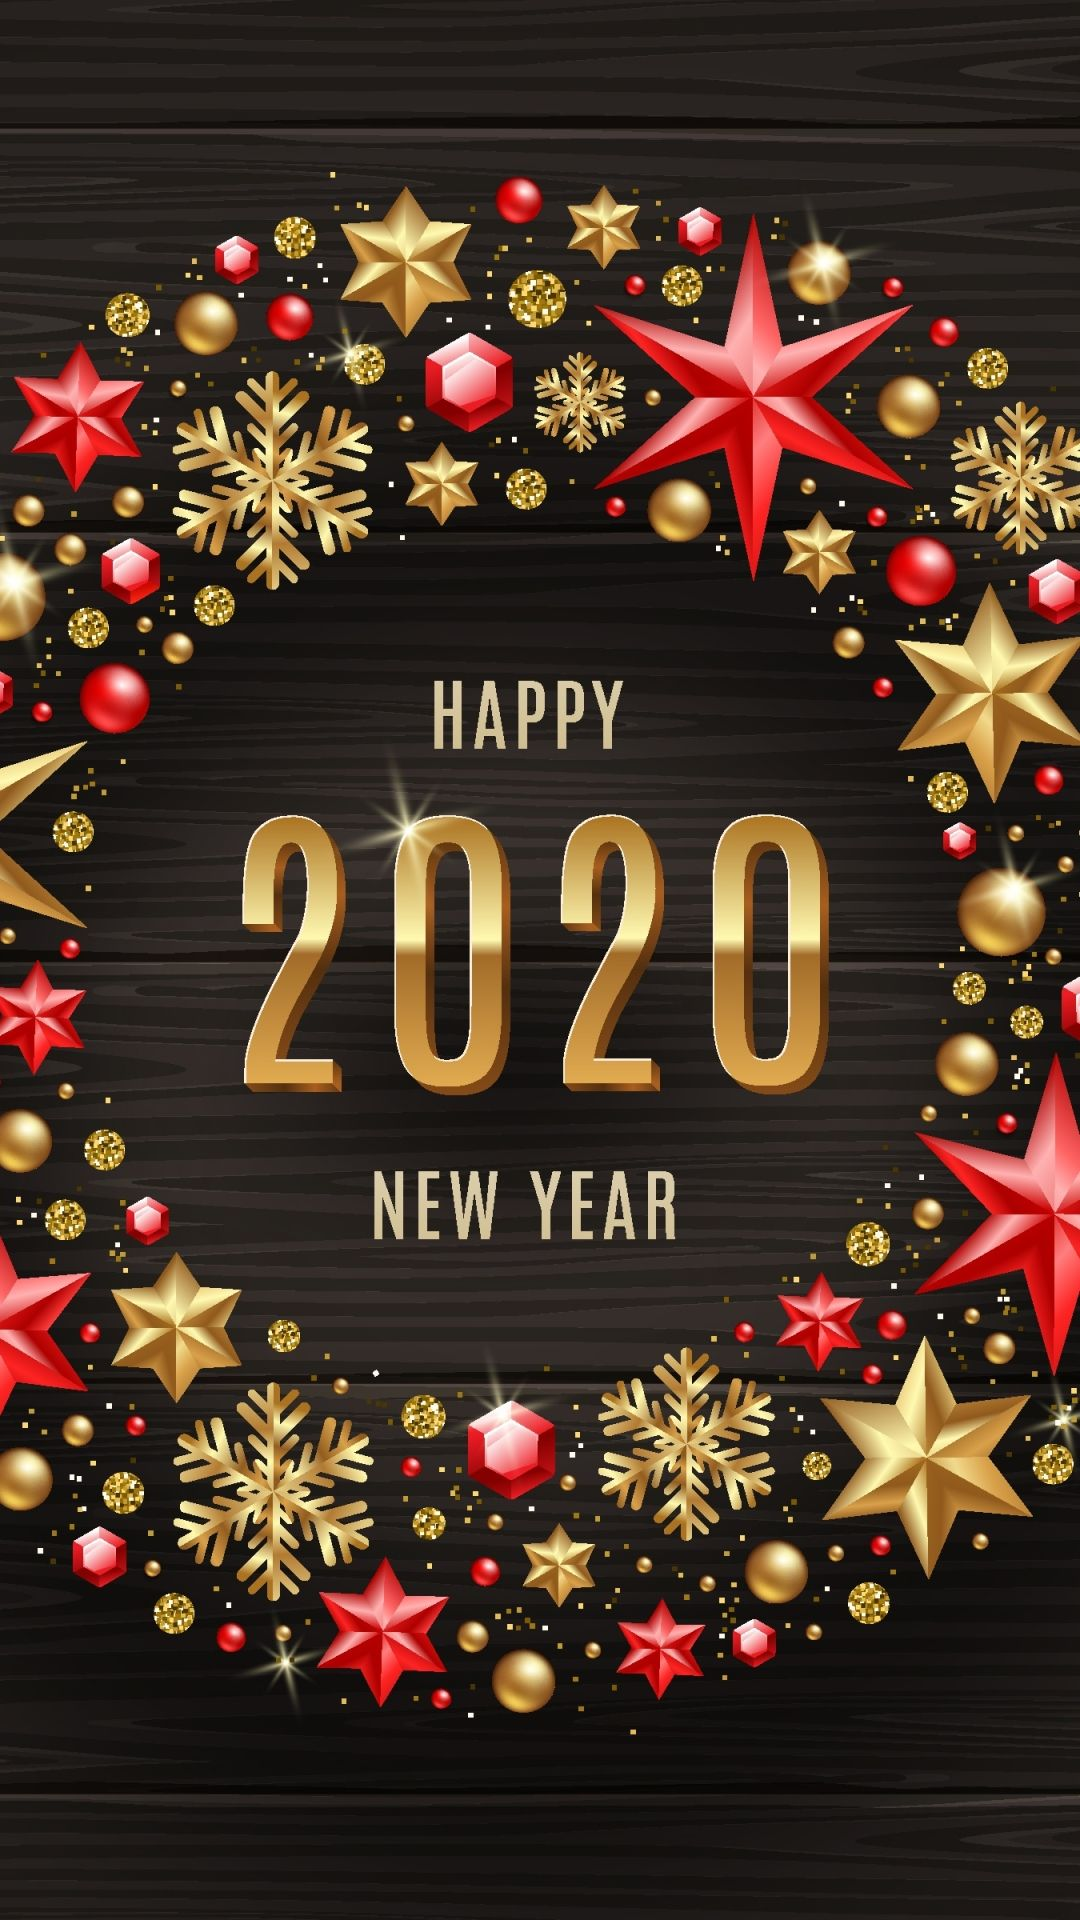 Happy New Year 2020 Wishes Wallpaper Happy new year